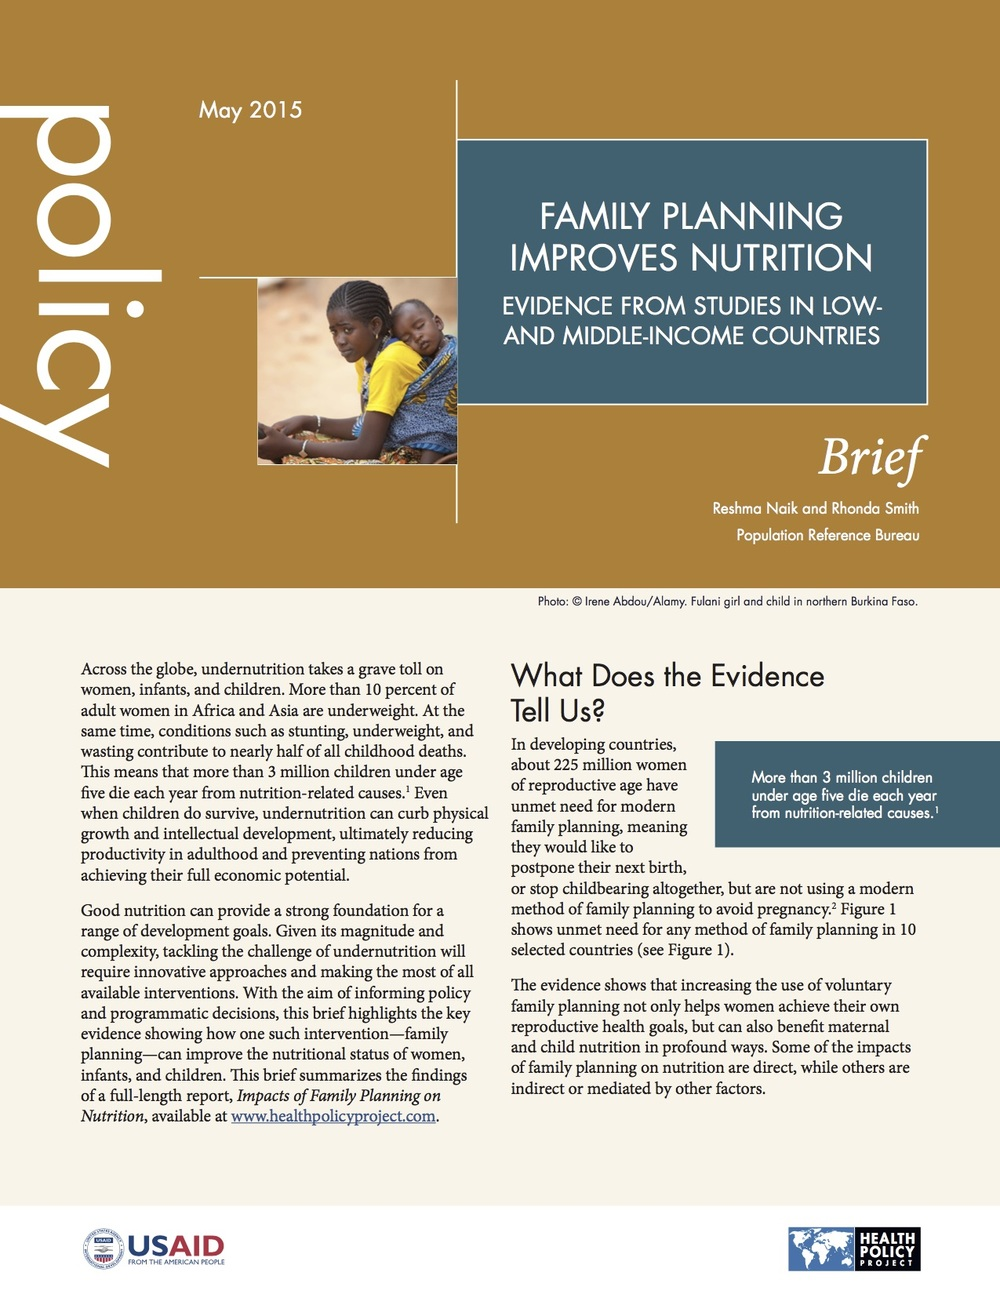 Family Planning Improves Nutrition: Evidence from Studies in Low- And Middle-Income Countries